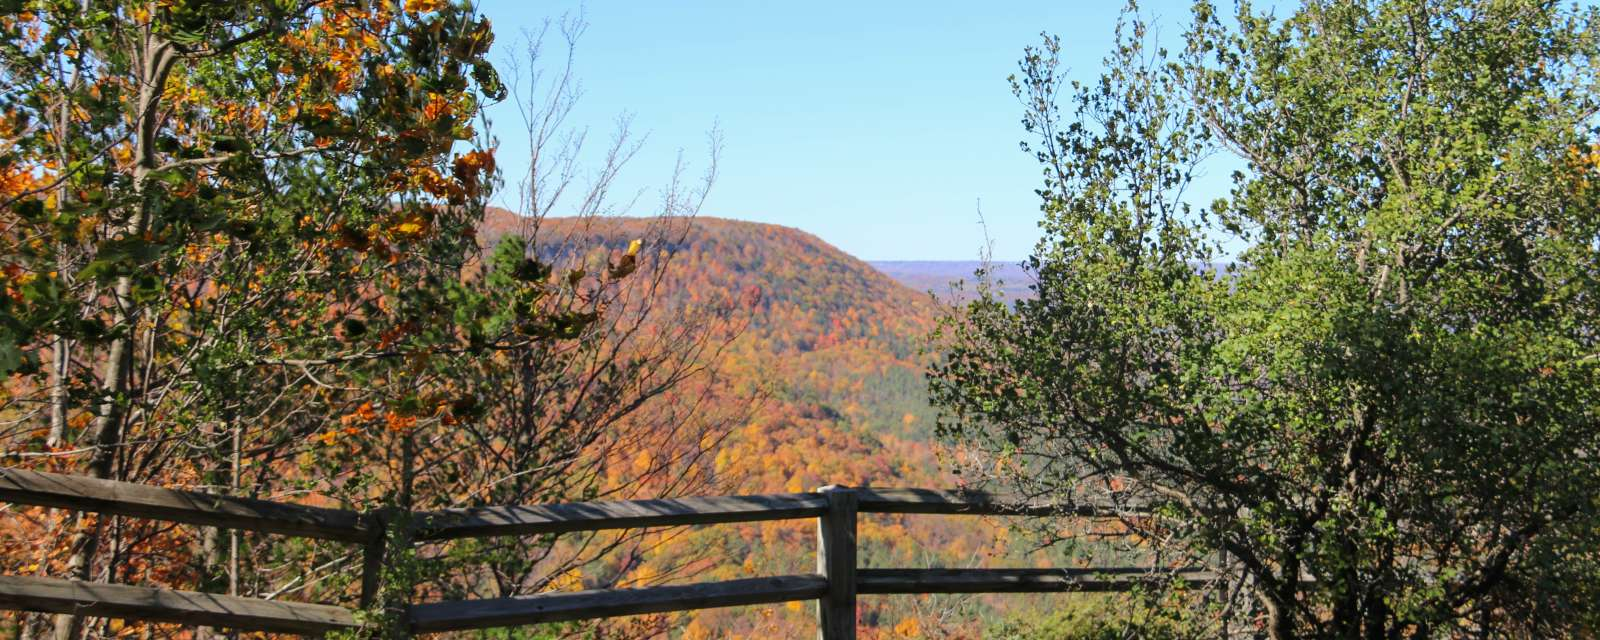 John Boyd Thacher State Park in the Fall